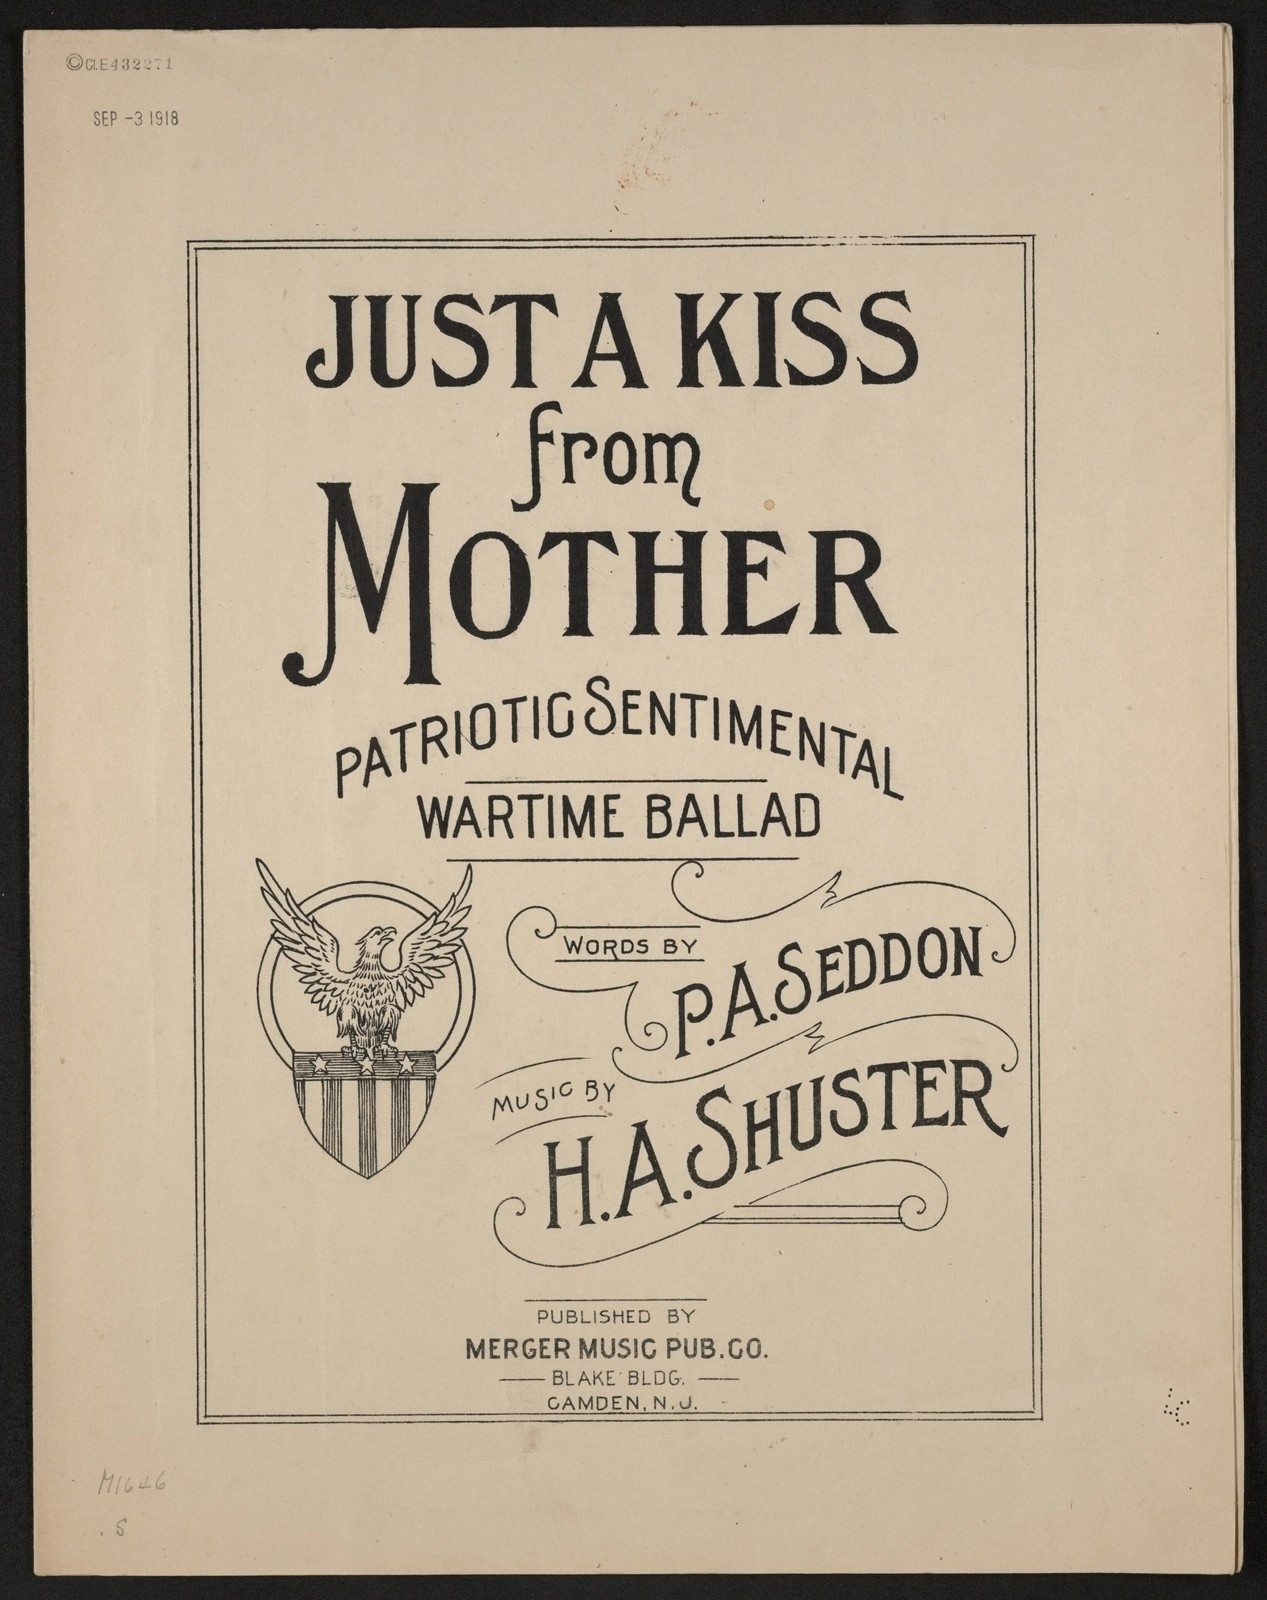 Just a kiss from mother patriotic sentimental wartime ballad